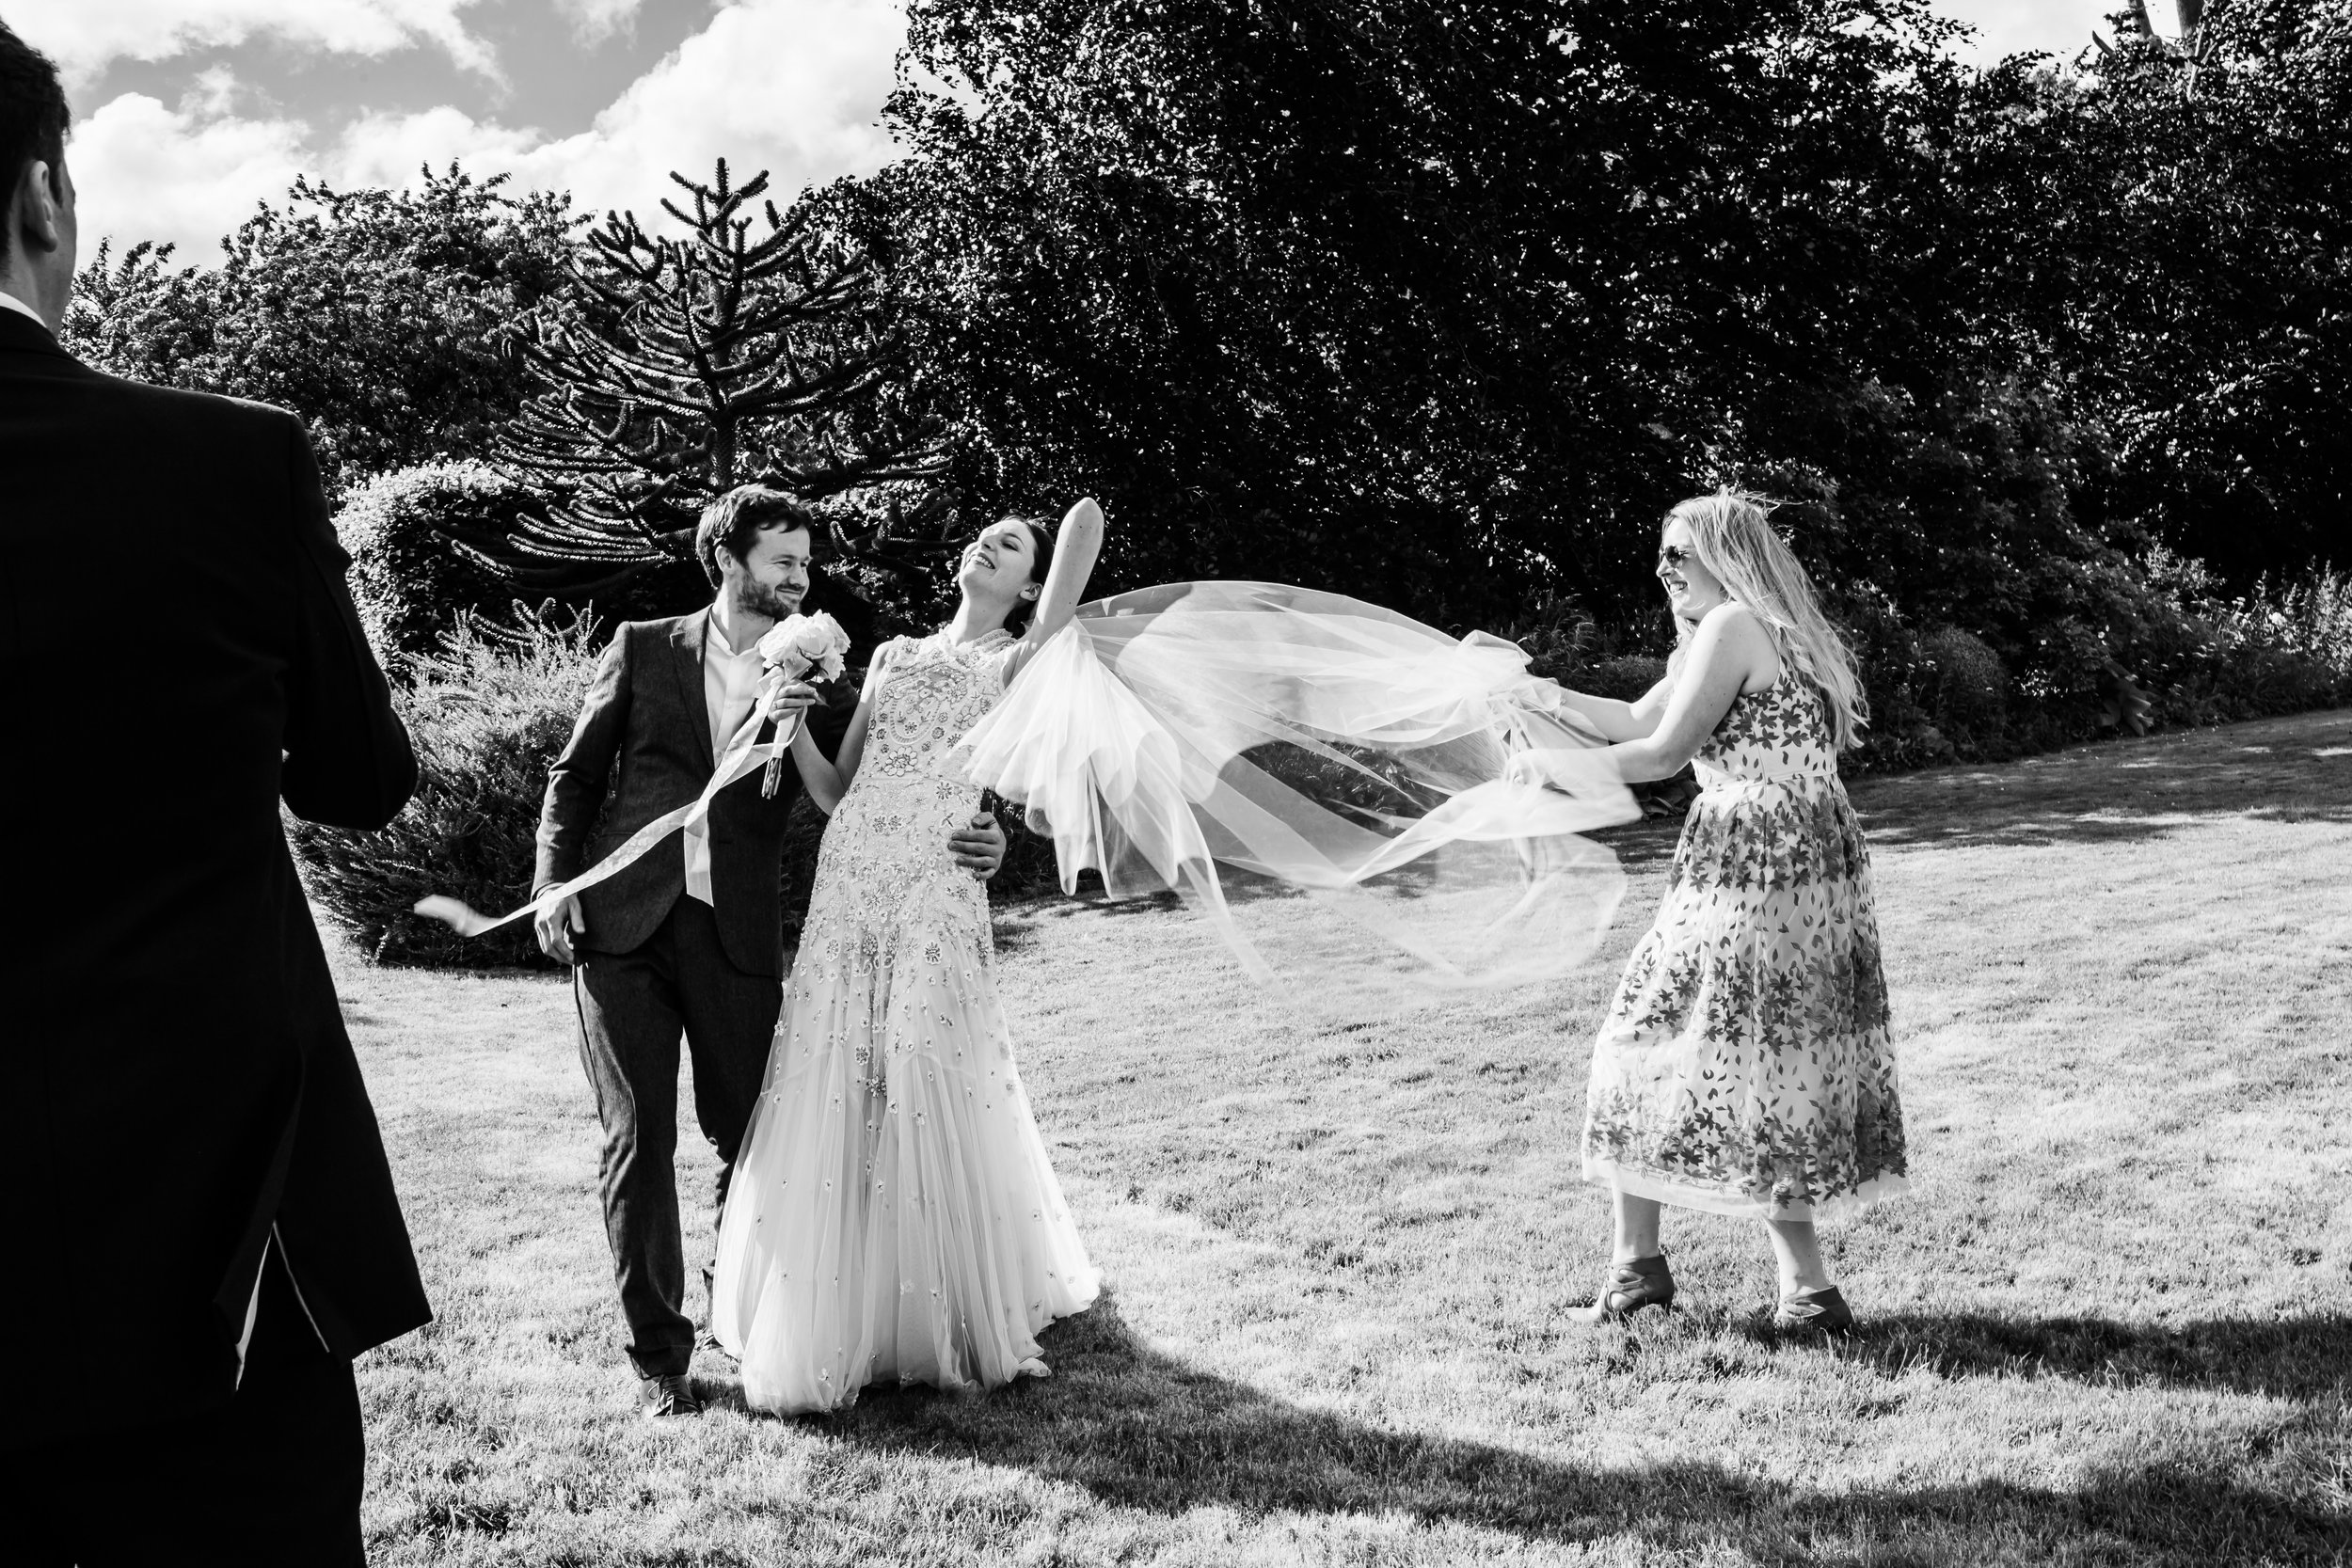 A brides veil blows in the wind